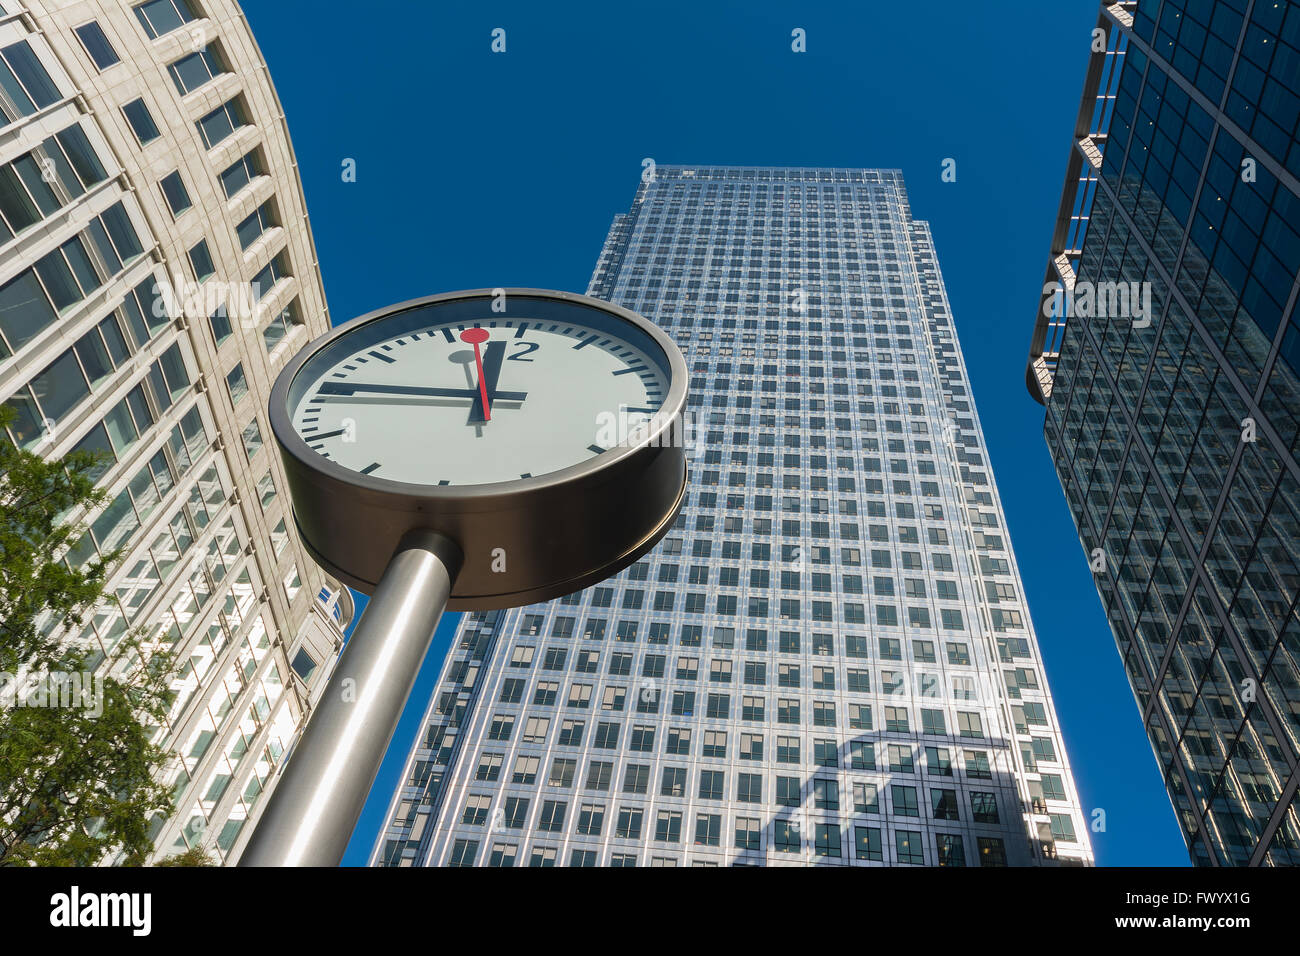 Clock and skyscrapers at Canary Wharf, Docklands the heart of the financial district of London - Stock Image